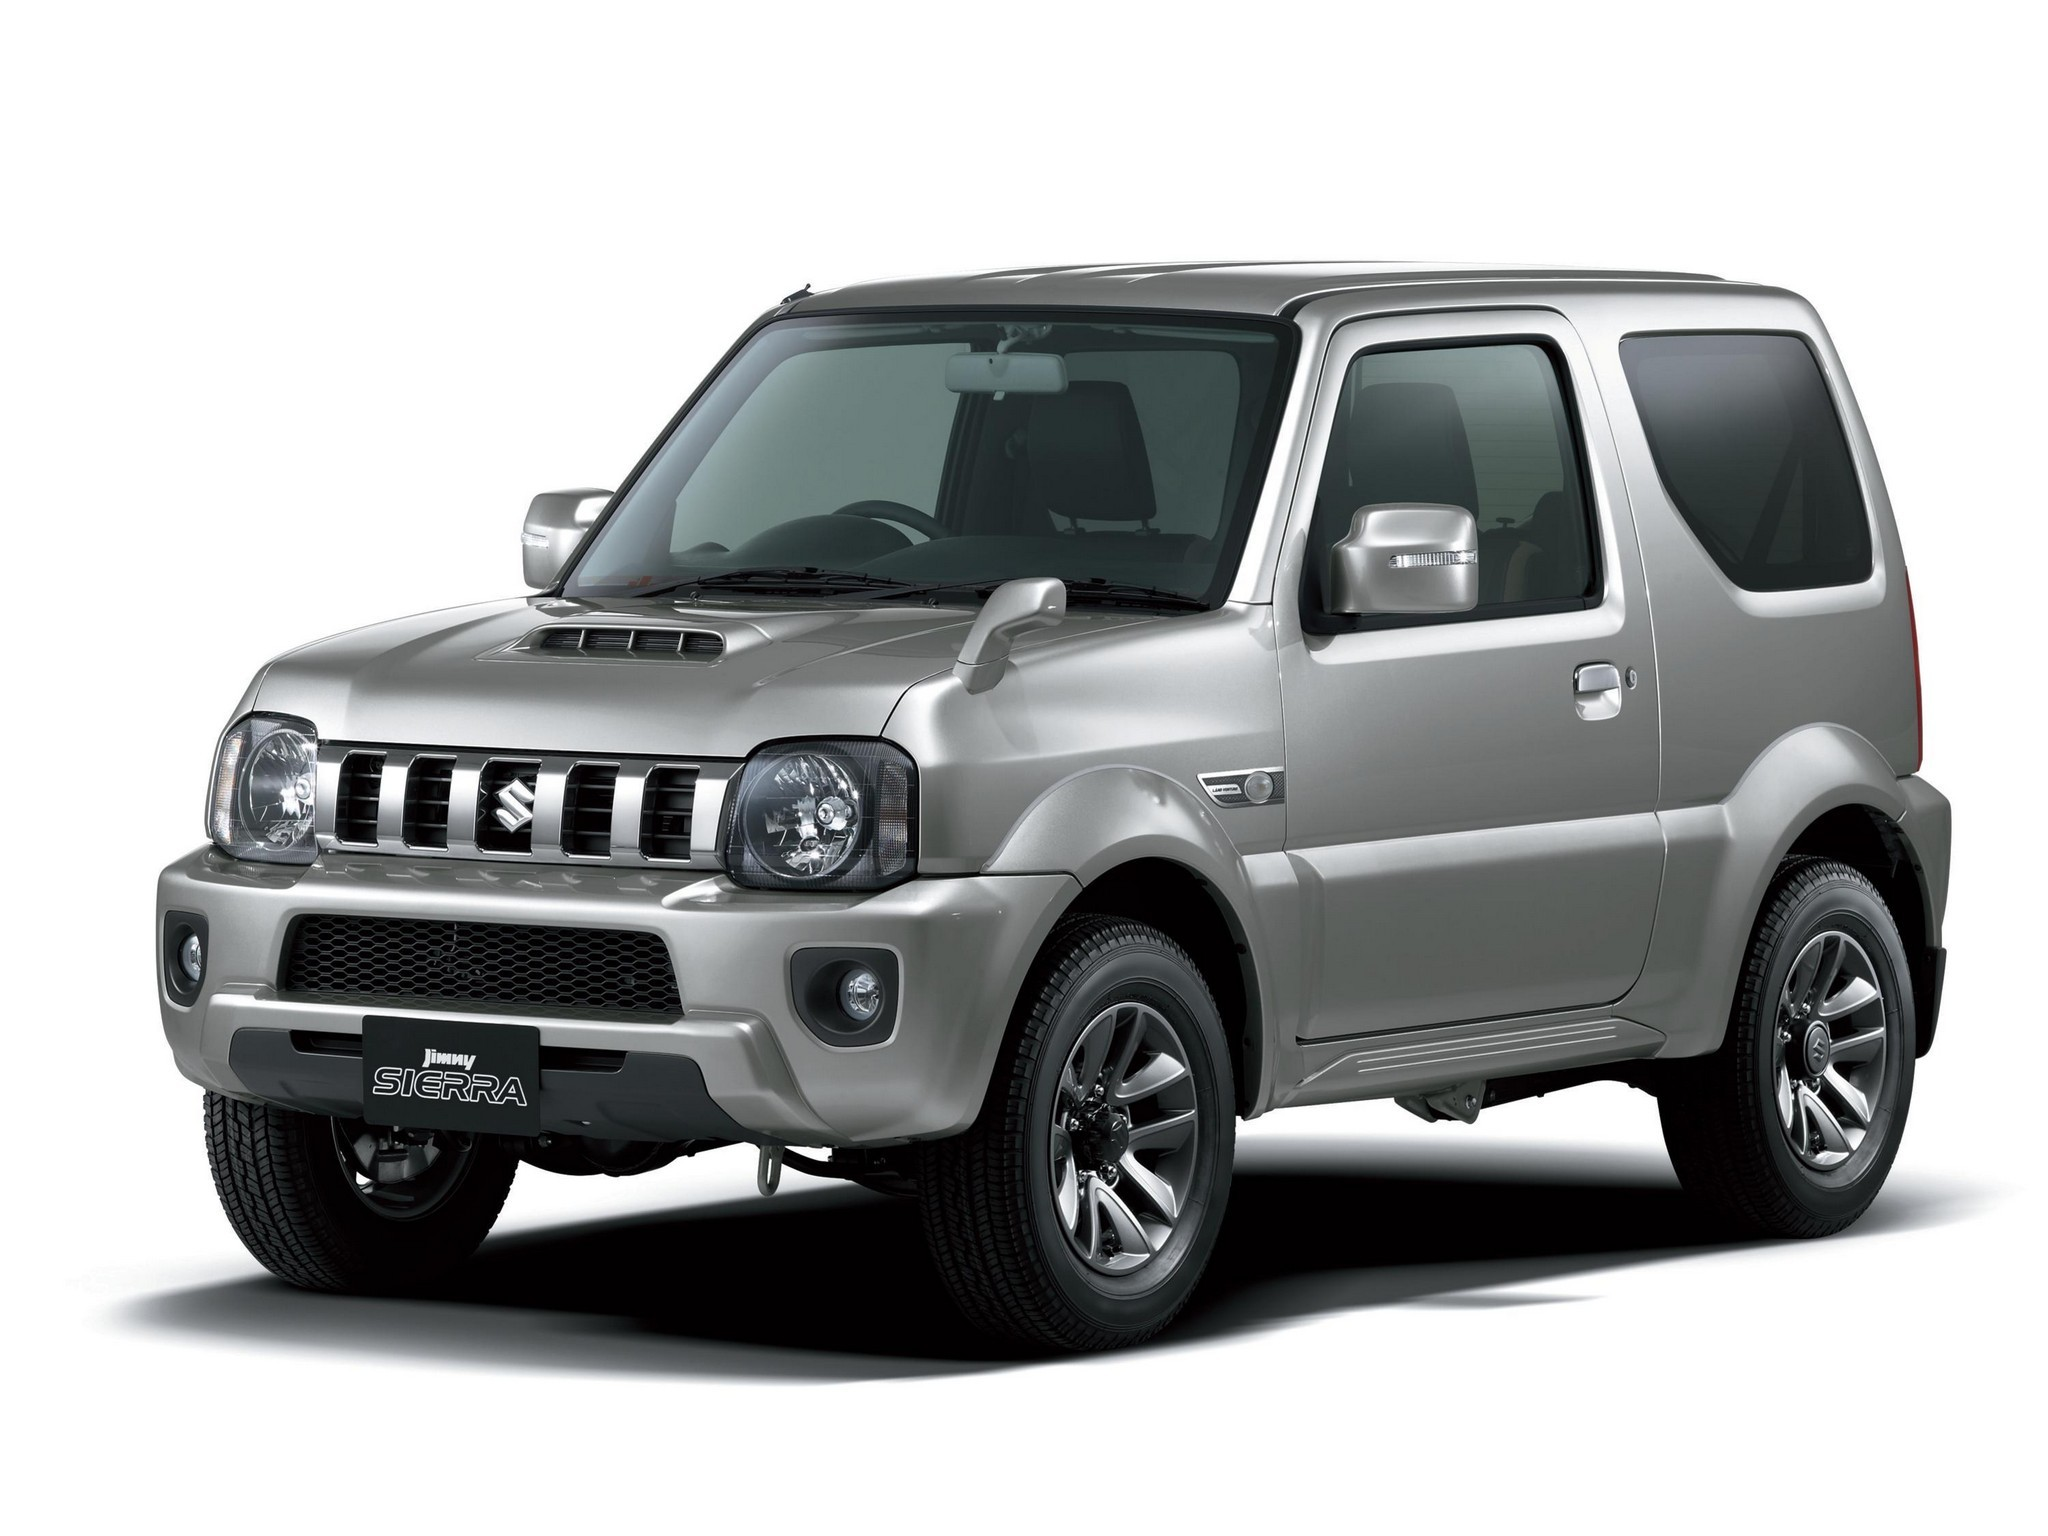 suzuki jimny specs 2012 2013 2014 2015 2016 2017 2018 autoevolution. Black Bedroom Furniture Sets. Home Design Ideas